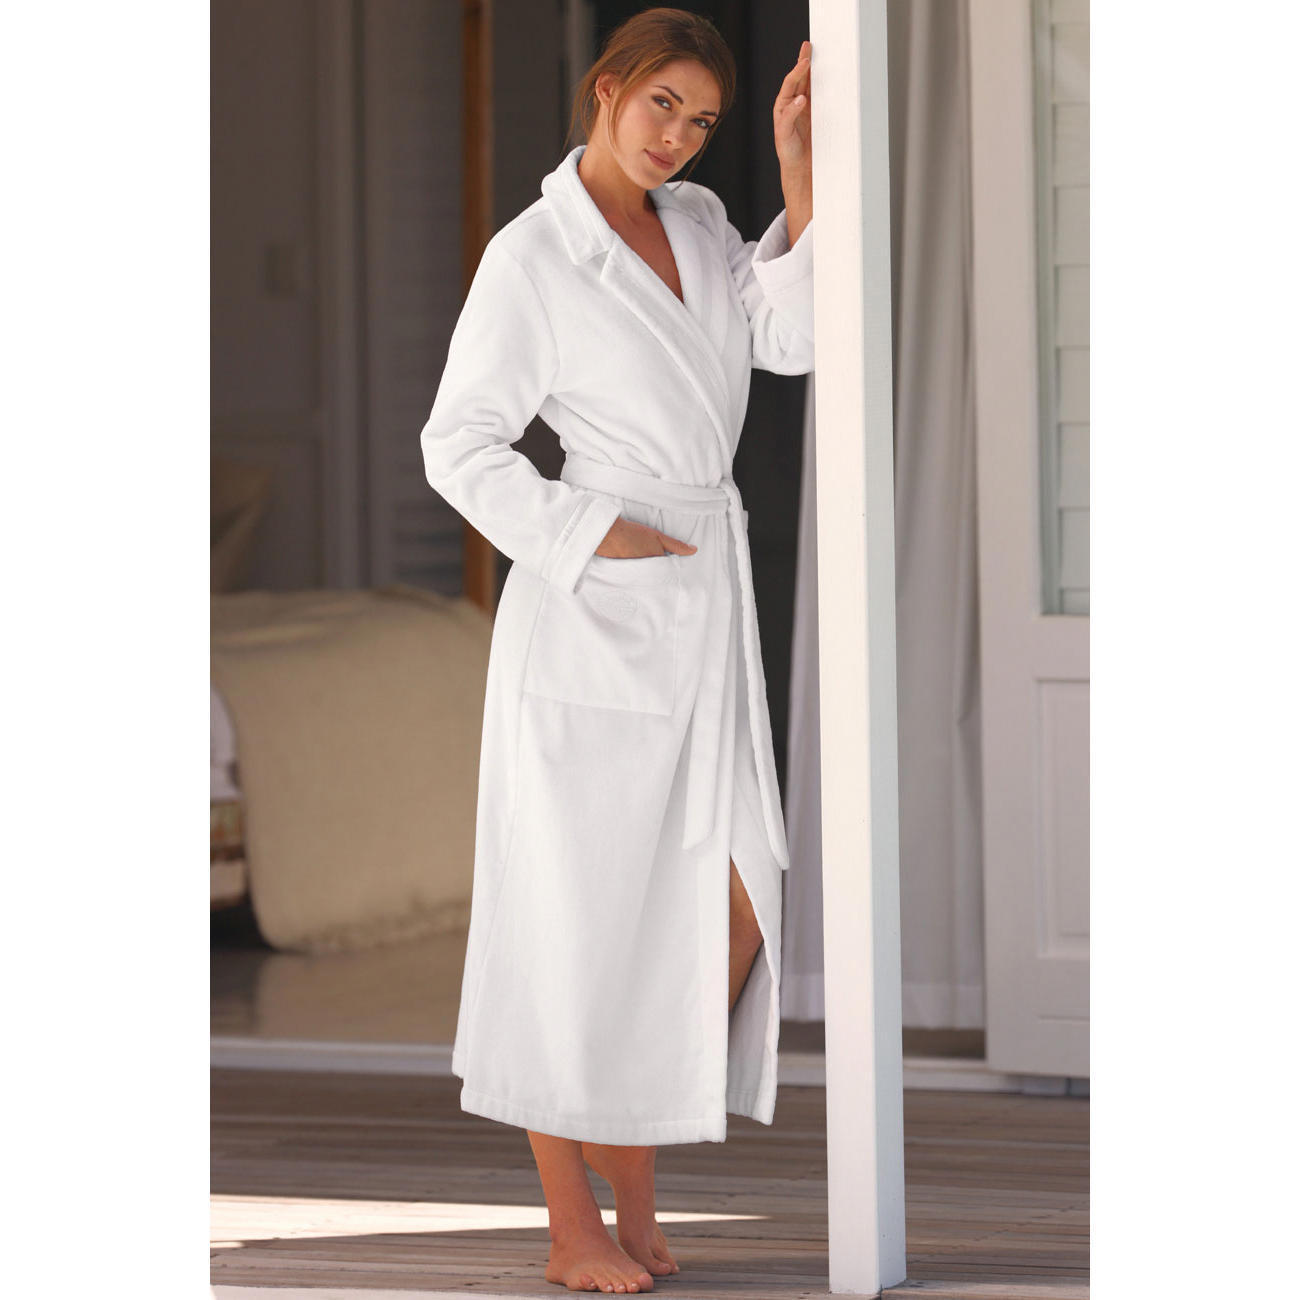 f raud couture bathrobe elegant feminine and just as cosy as a regular bathrobe